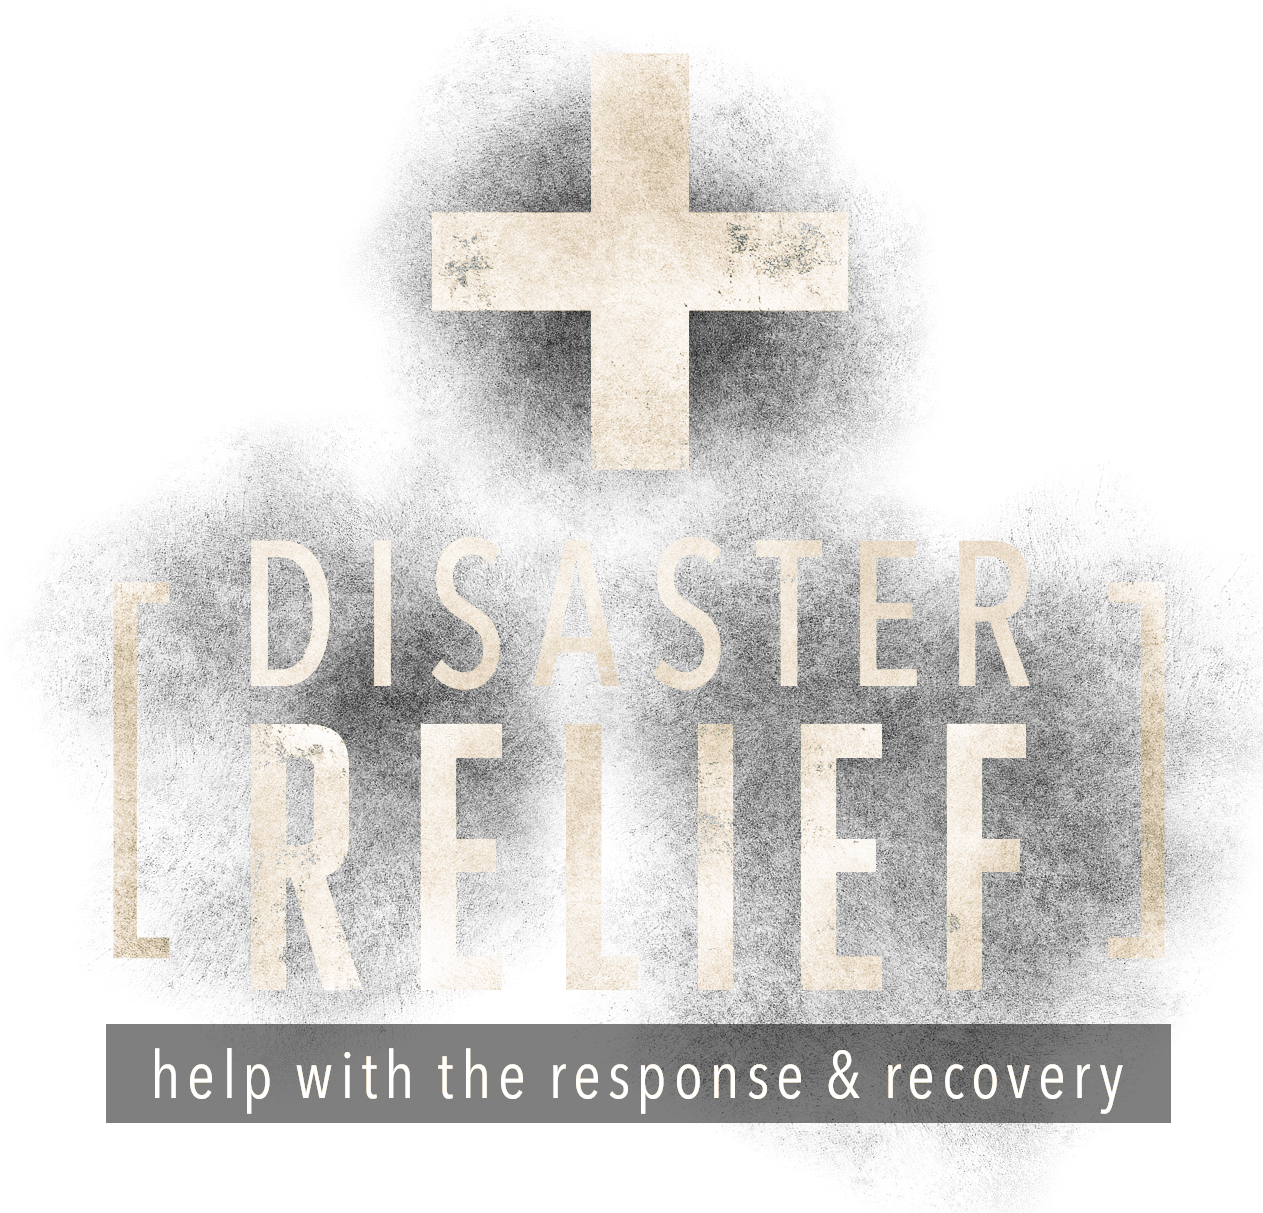 Disaster Relief (Wording only).png